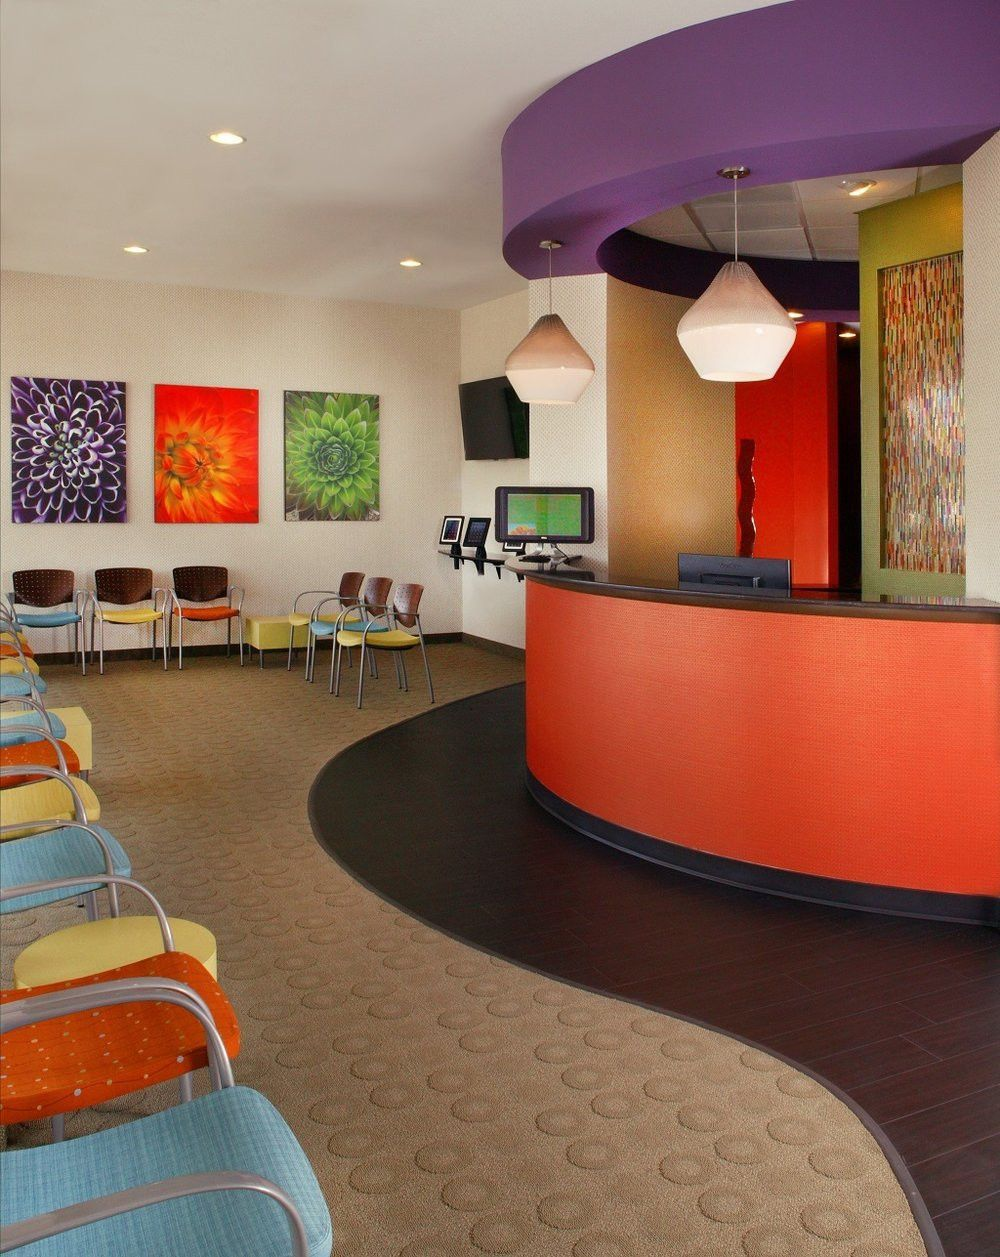 Joy Orthodontics — Architectural Sales & Illumination